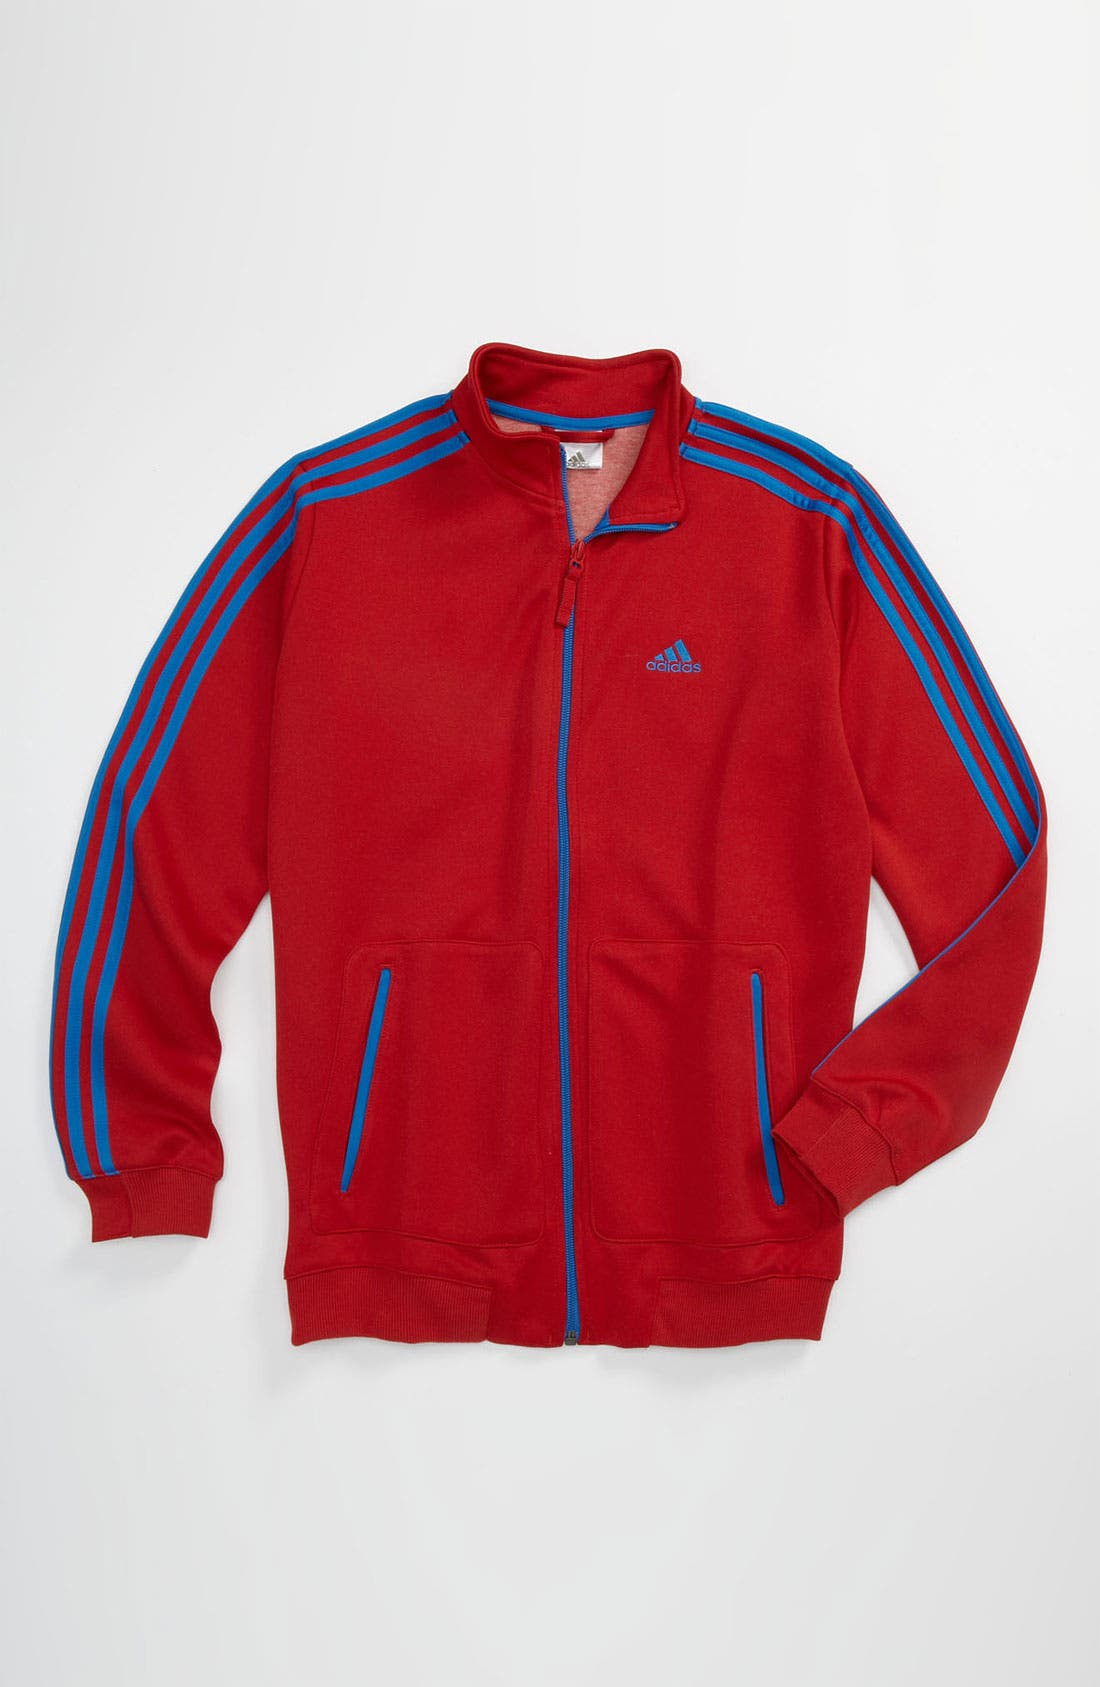 Main Image - adidas 'Ultimate' Track Jacket (Big Boys)